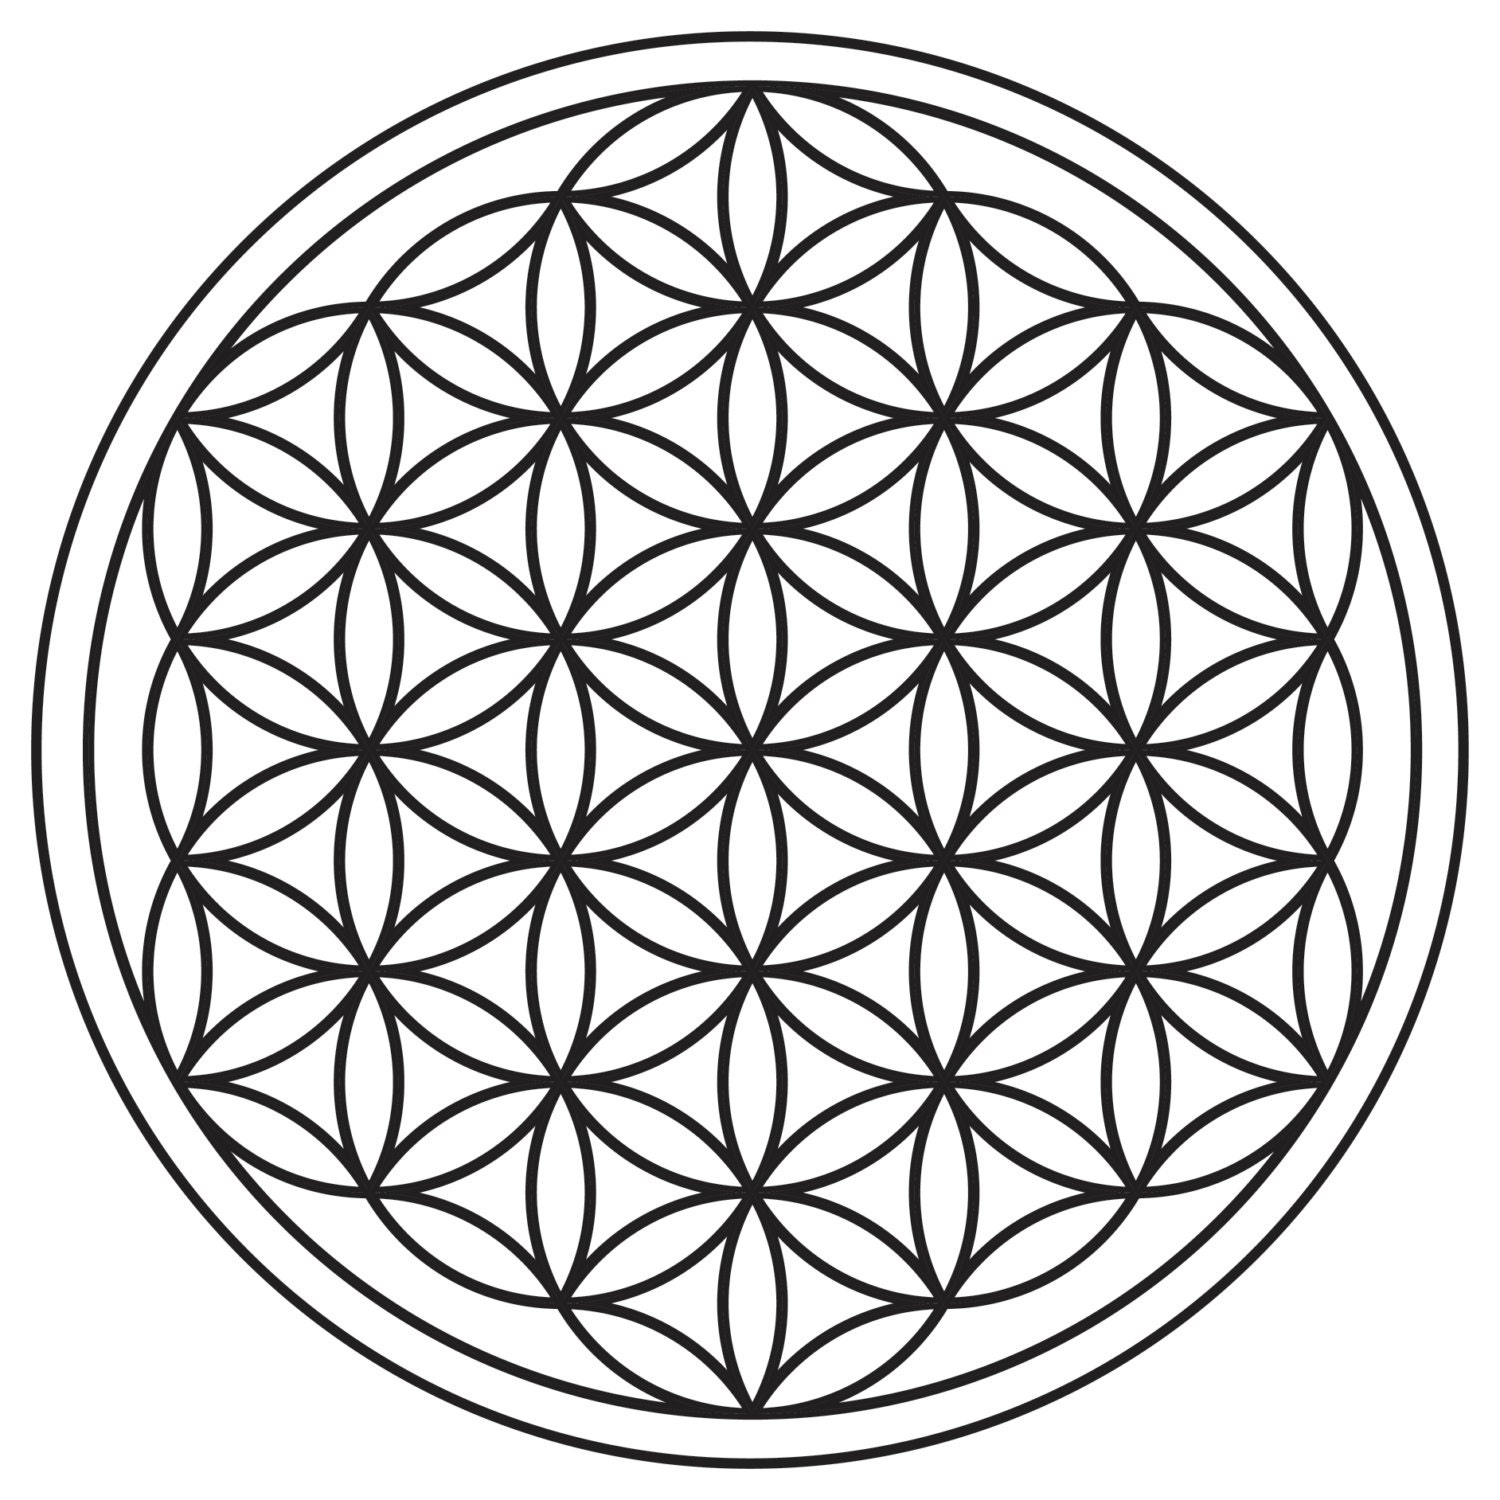 Flower of Life Black & White 12 x 12 Print by ElementalHealingShop: https://www.etsy.com/listing/153875044/flower-of-life-black-white...